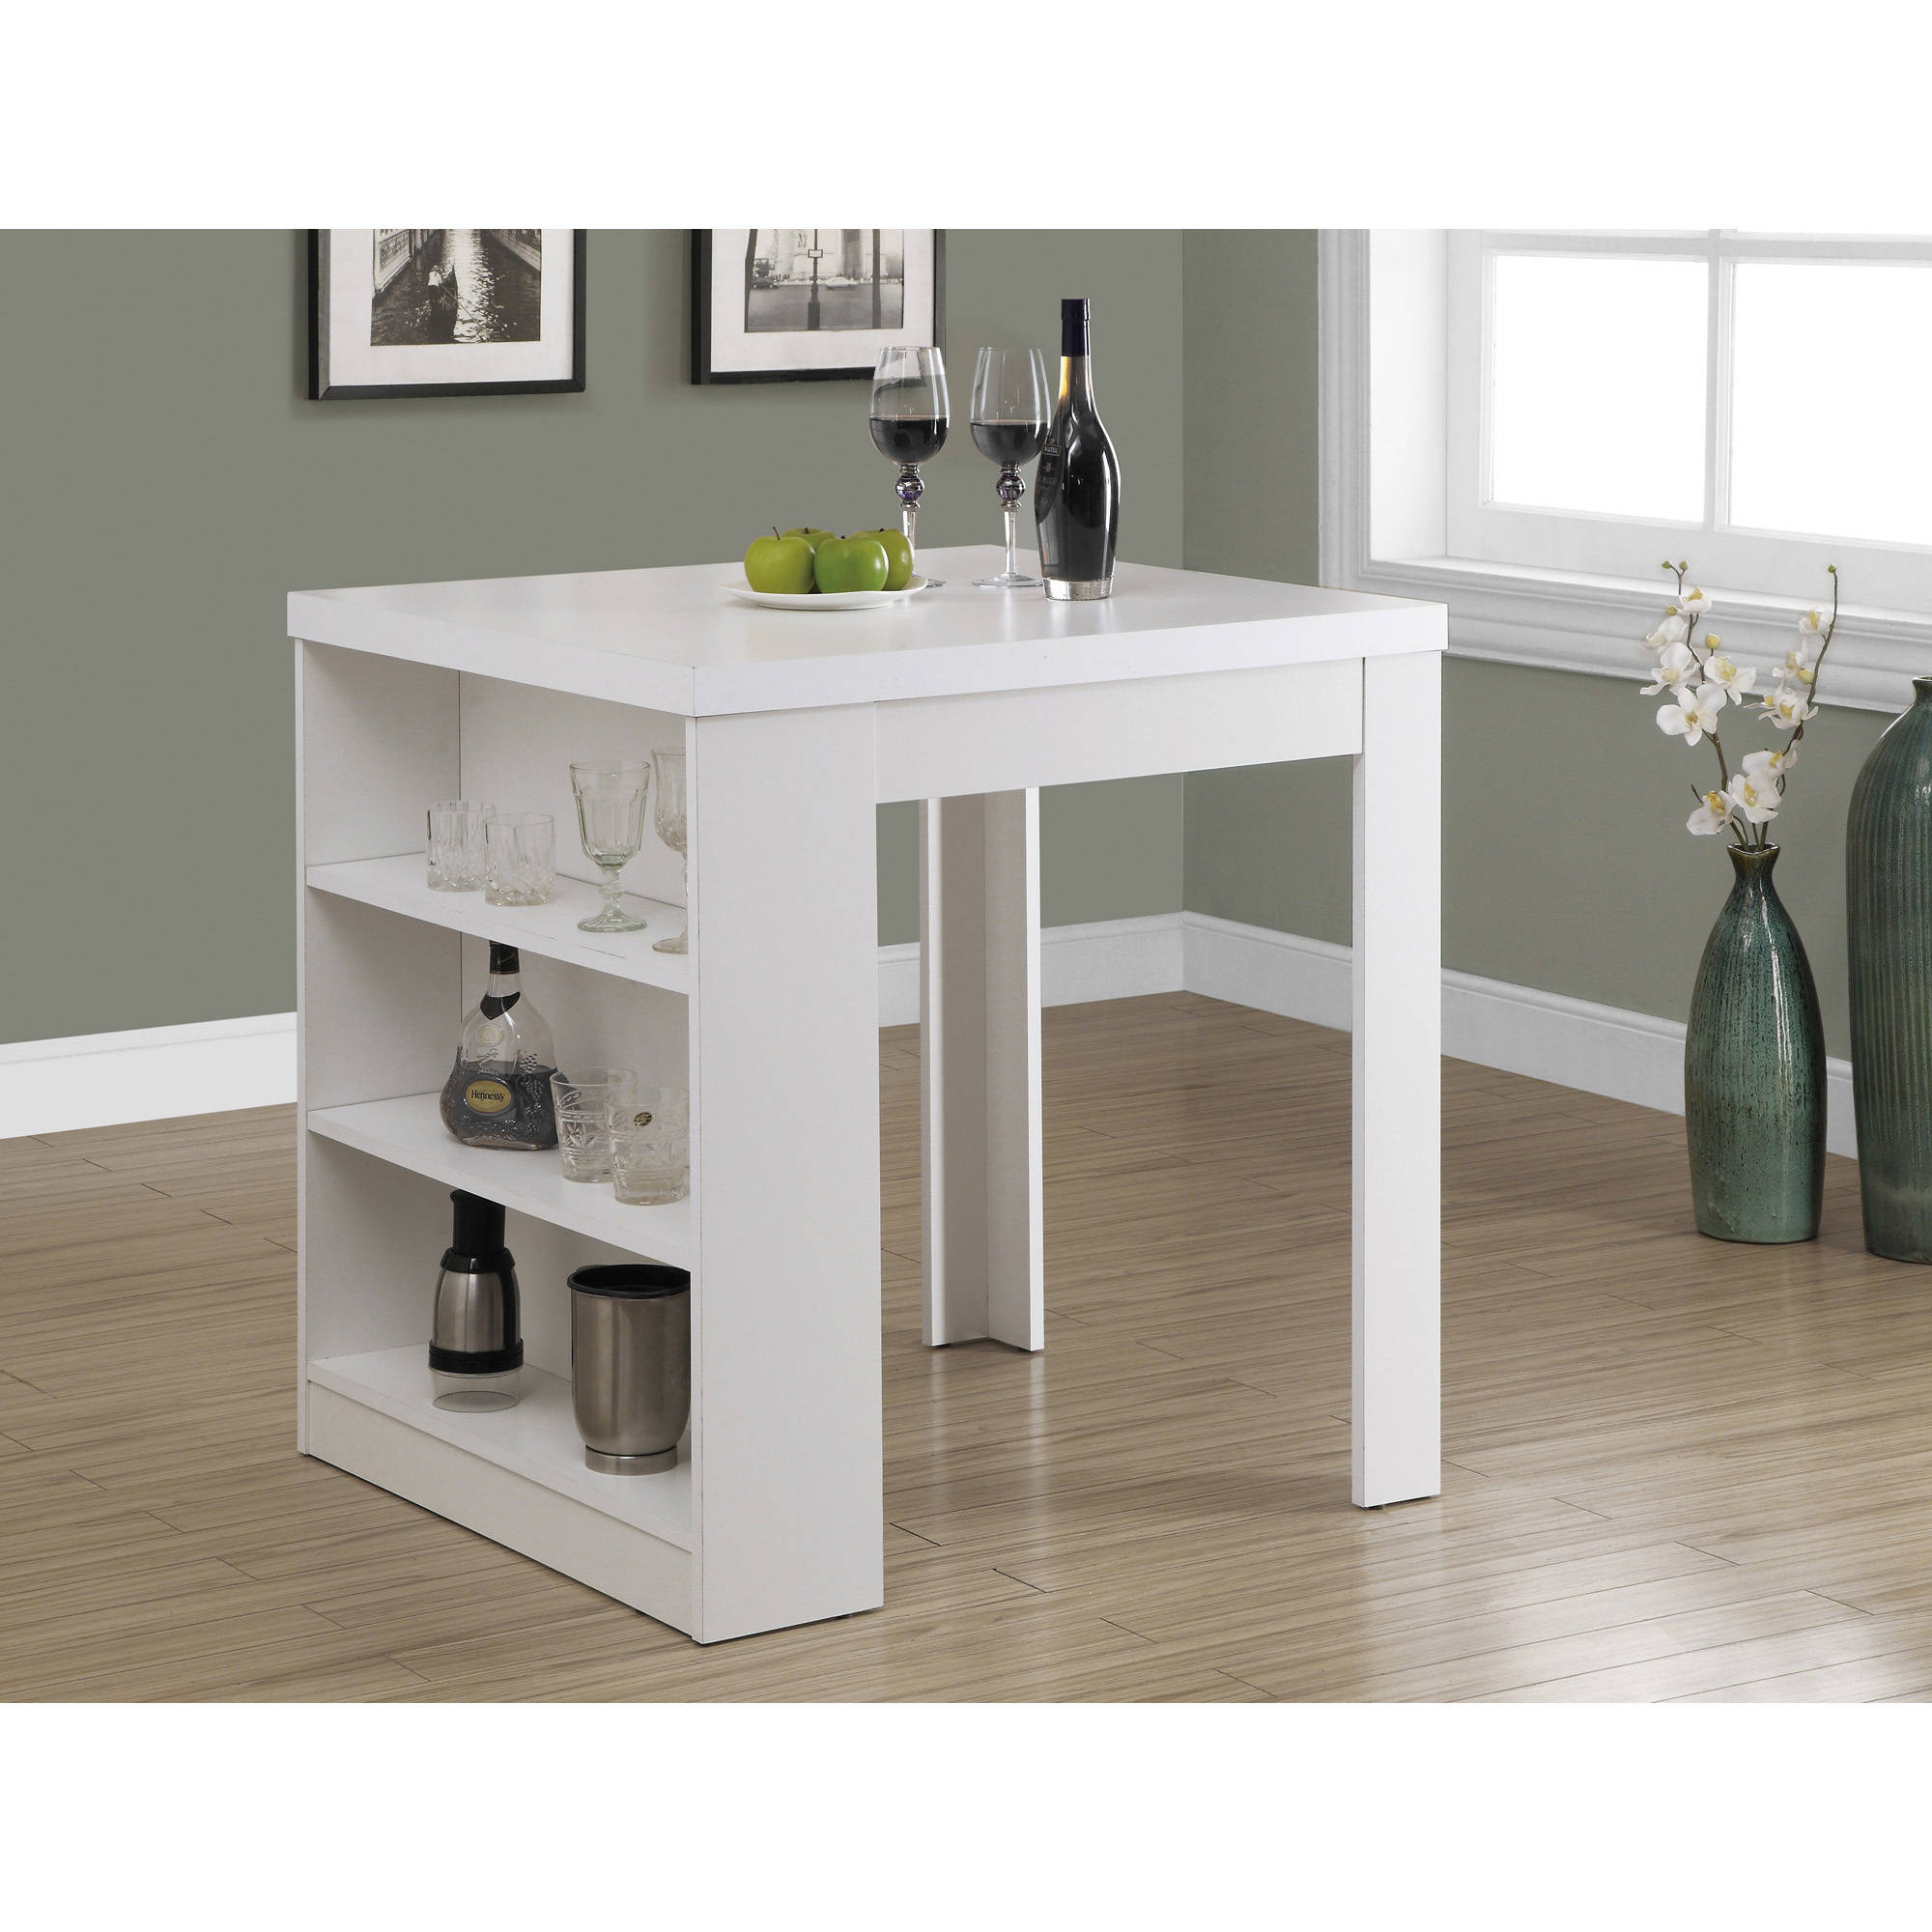 high kitchen table with storage upholstered bench atcsagacity